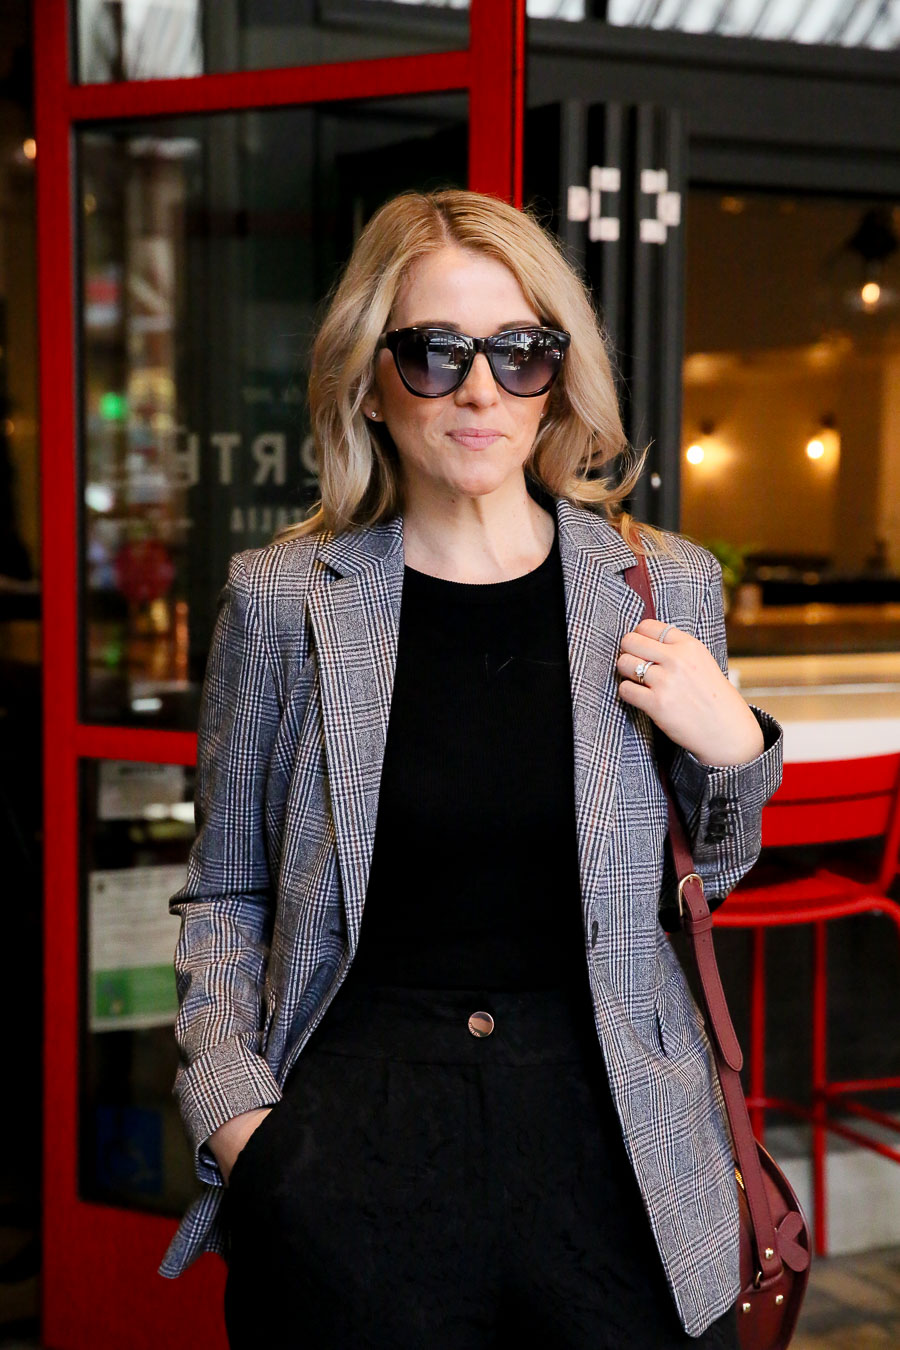 How to Wear Jogger Pants to Work with Plaid Blazer - Fall Outfit Idea